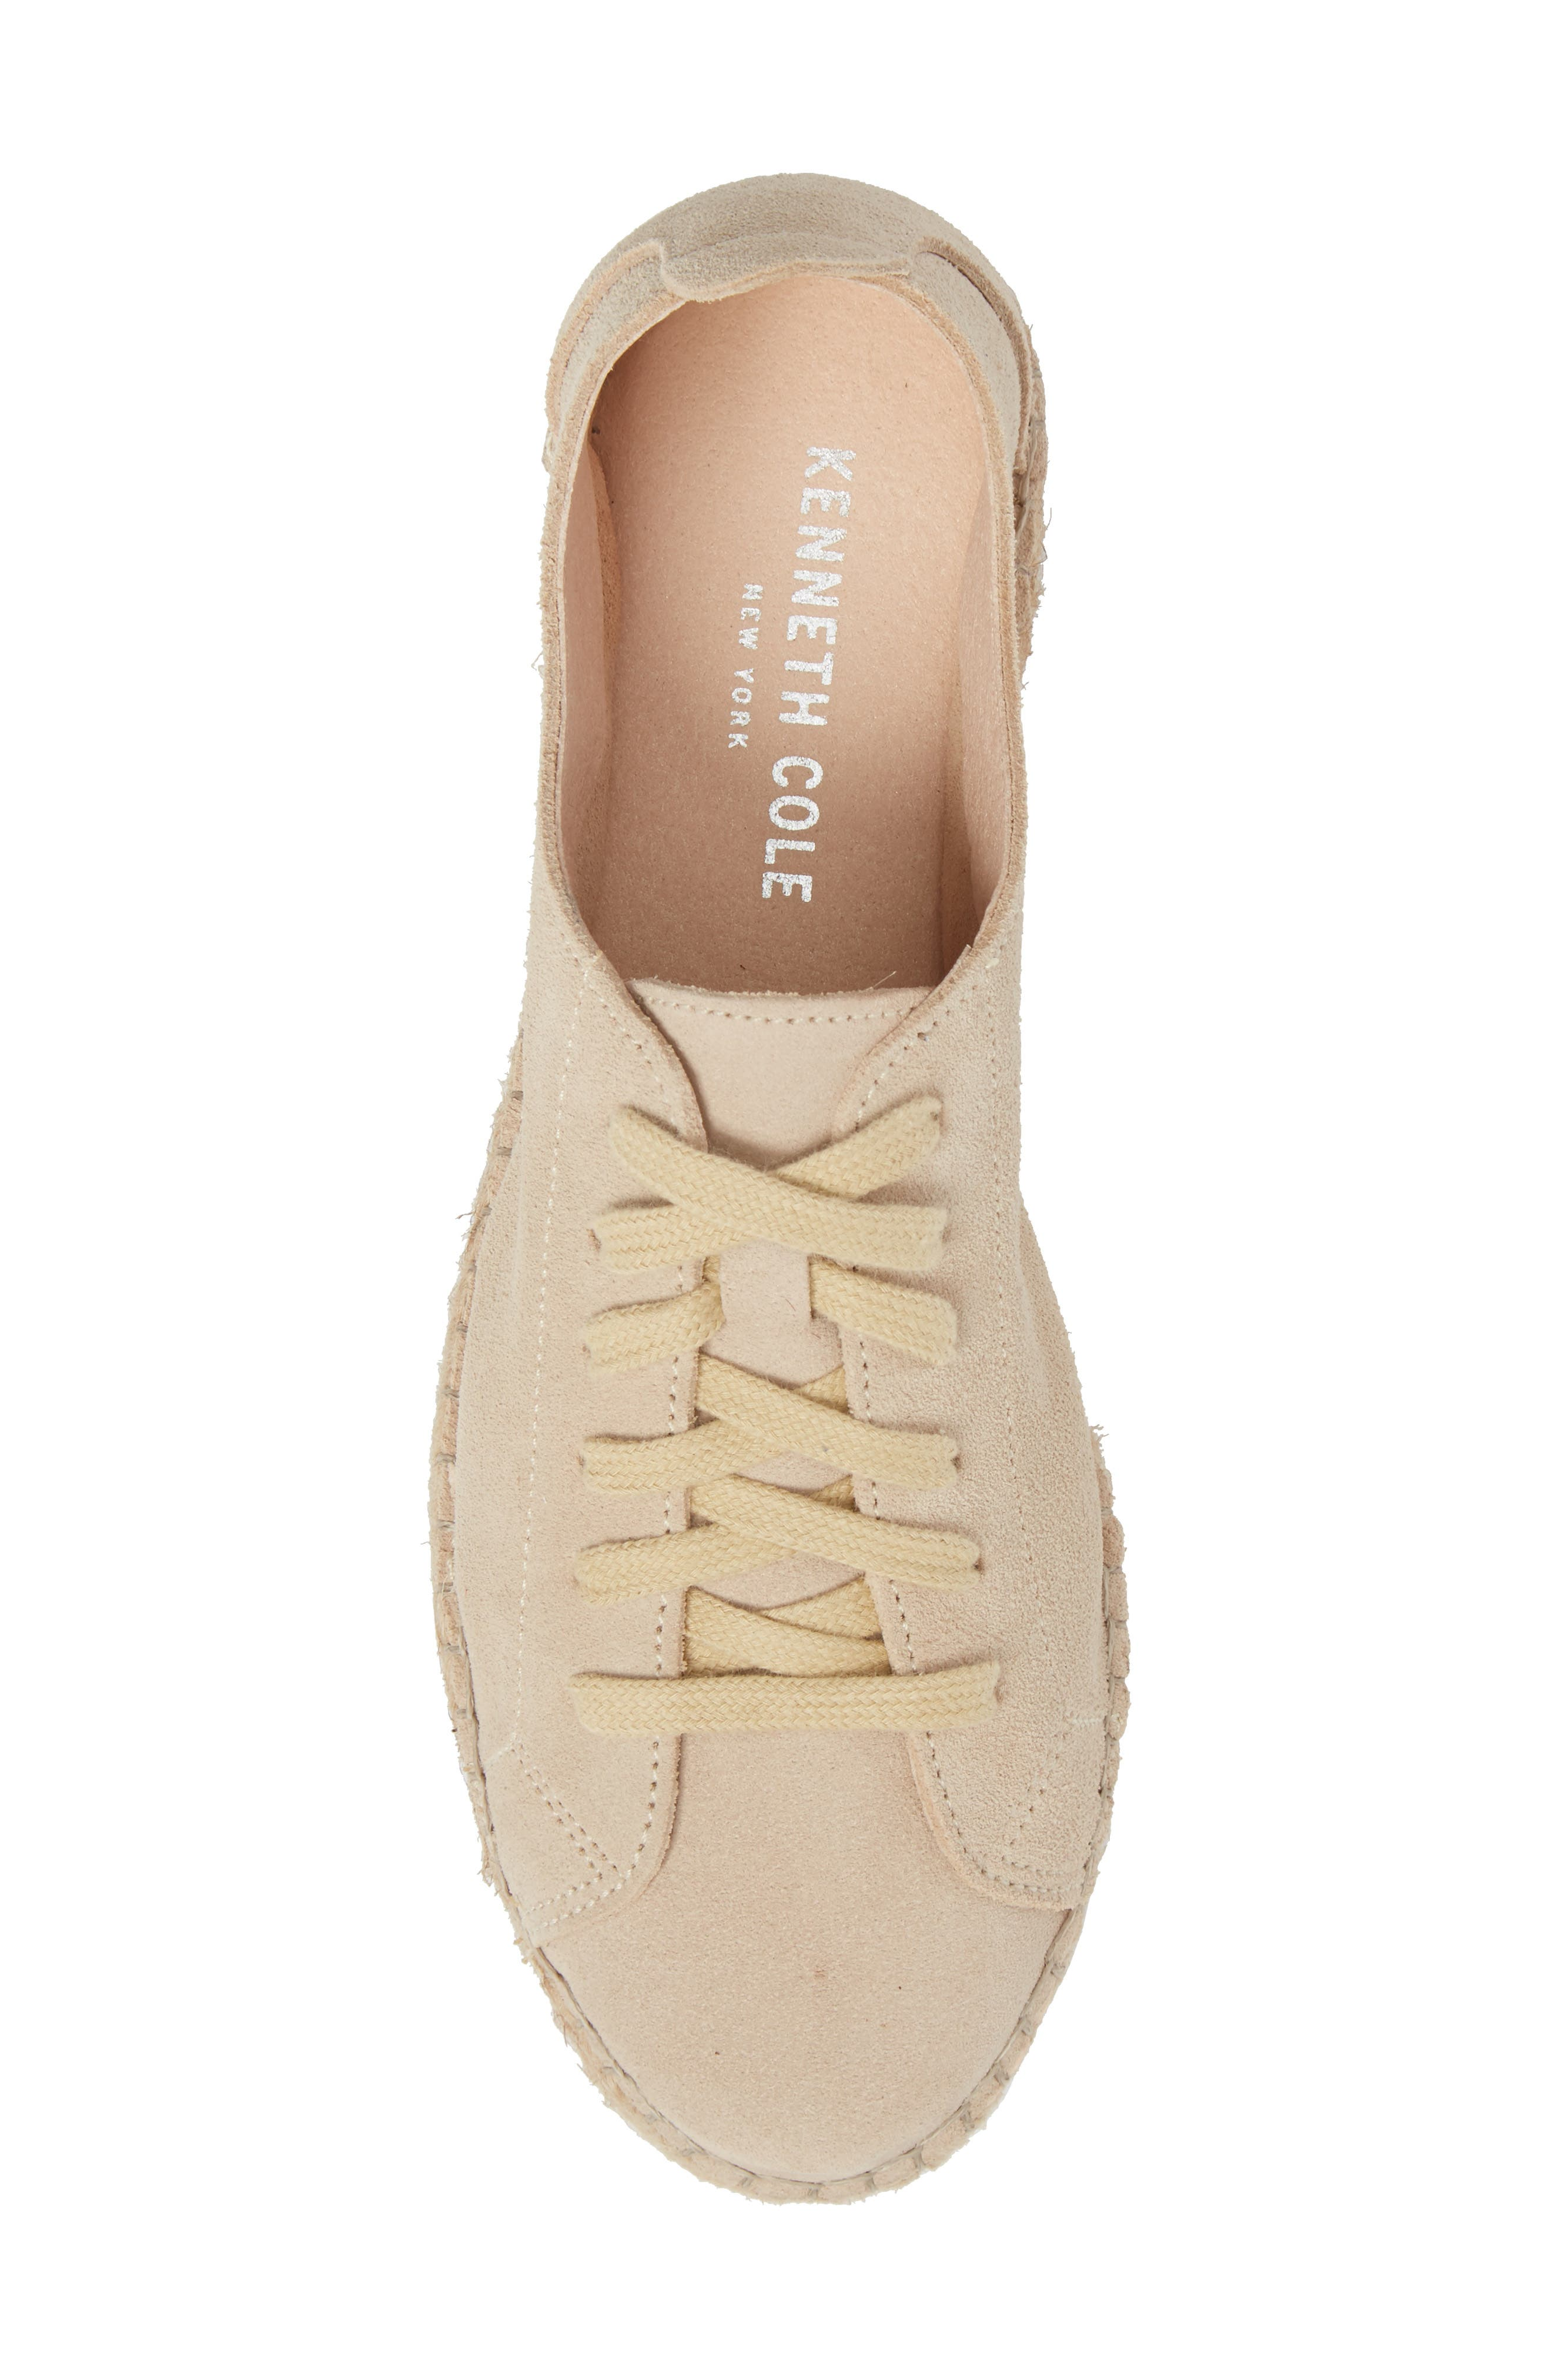 Zane Espadrille Sneaker,                             Alternate thumbnail 5, color,                             Taupe Suede